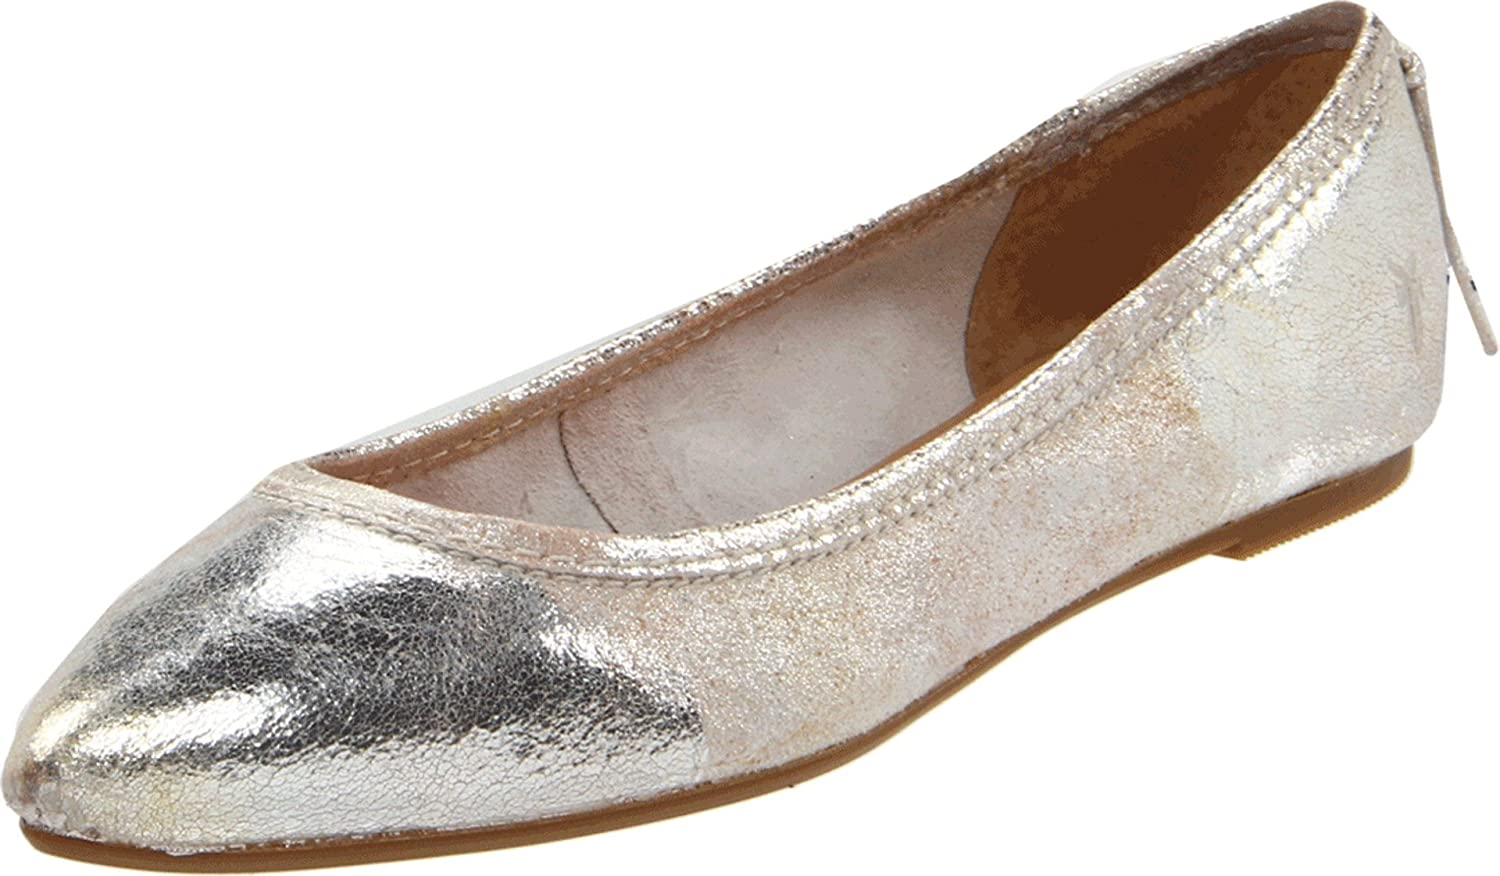 Frye Regina Ballet Flat - metallic pointy toe flat - pretty walking shoes